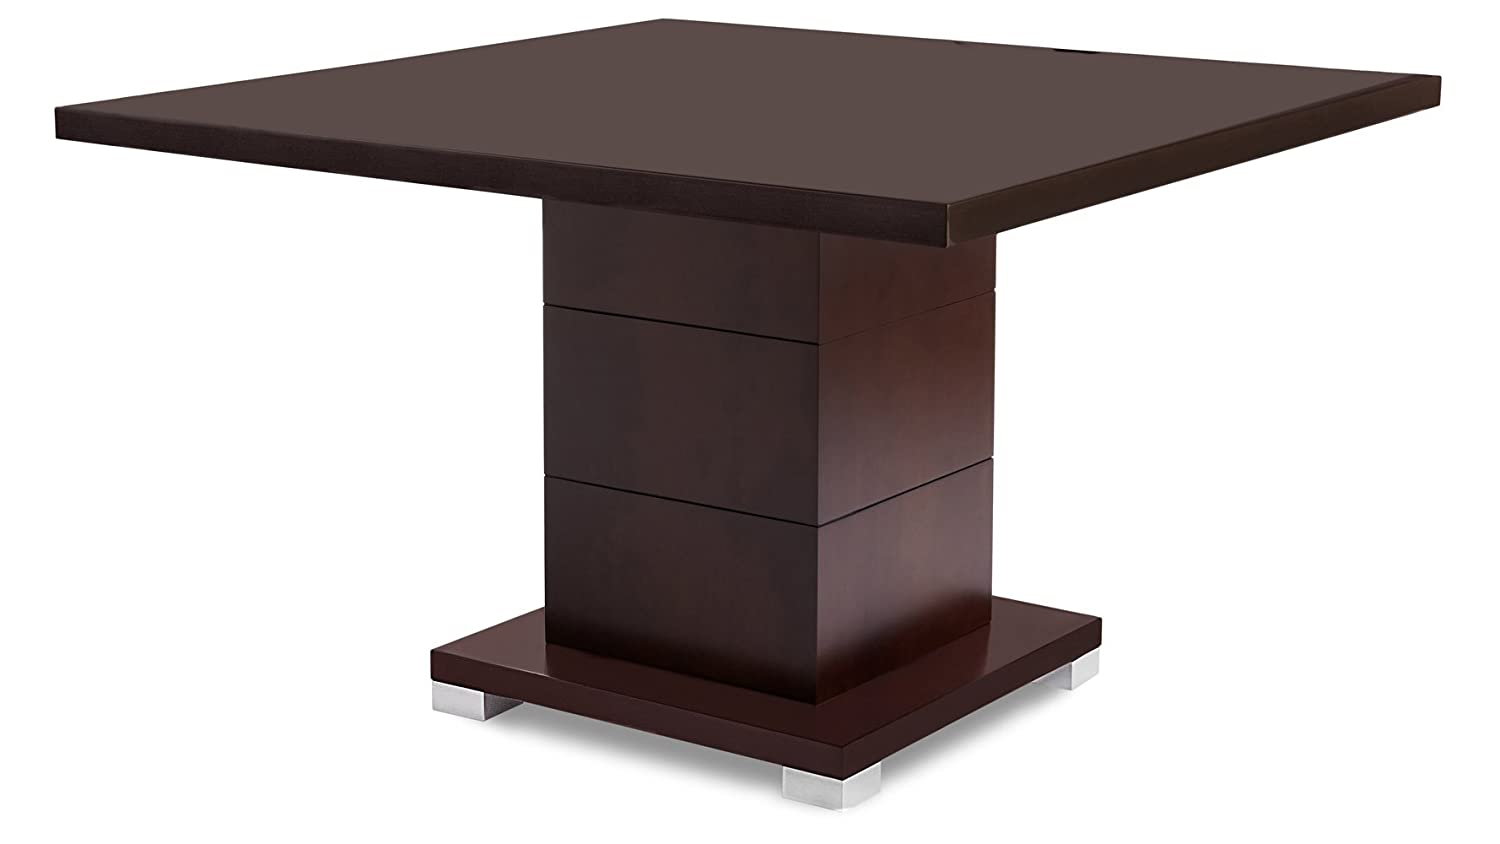 Ford Executive Modern Conference Table in Dark Walnut Wood – Square